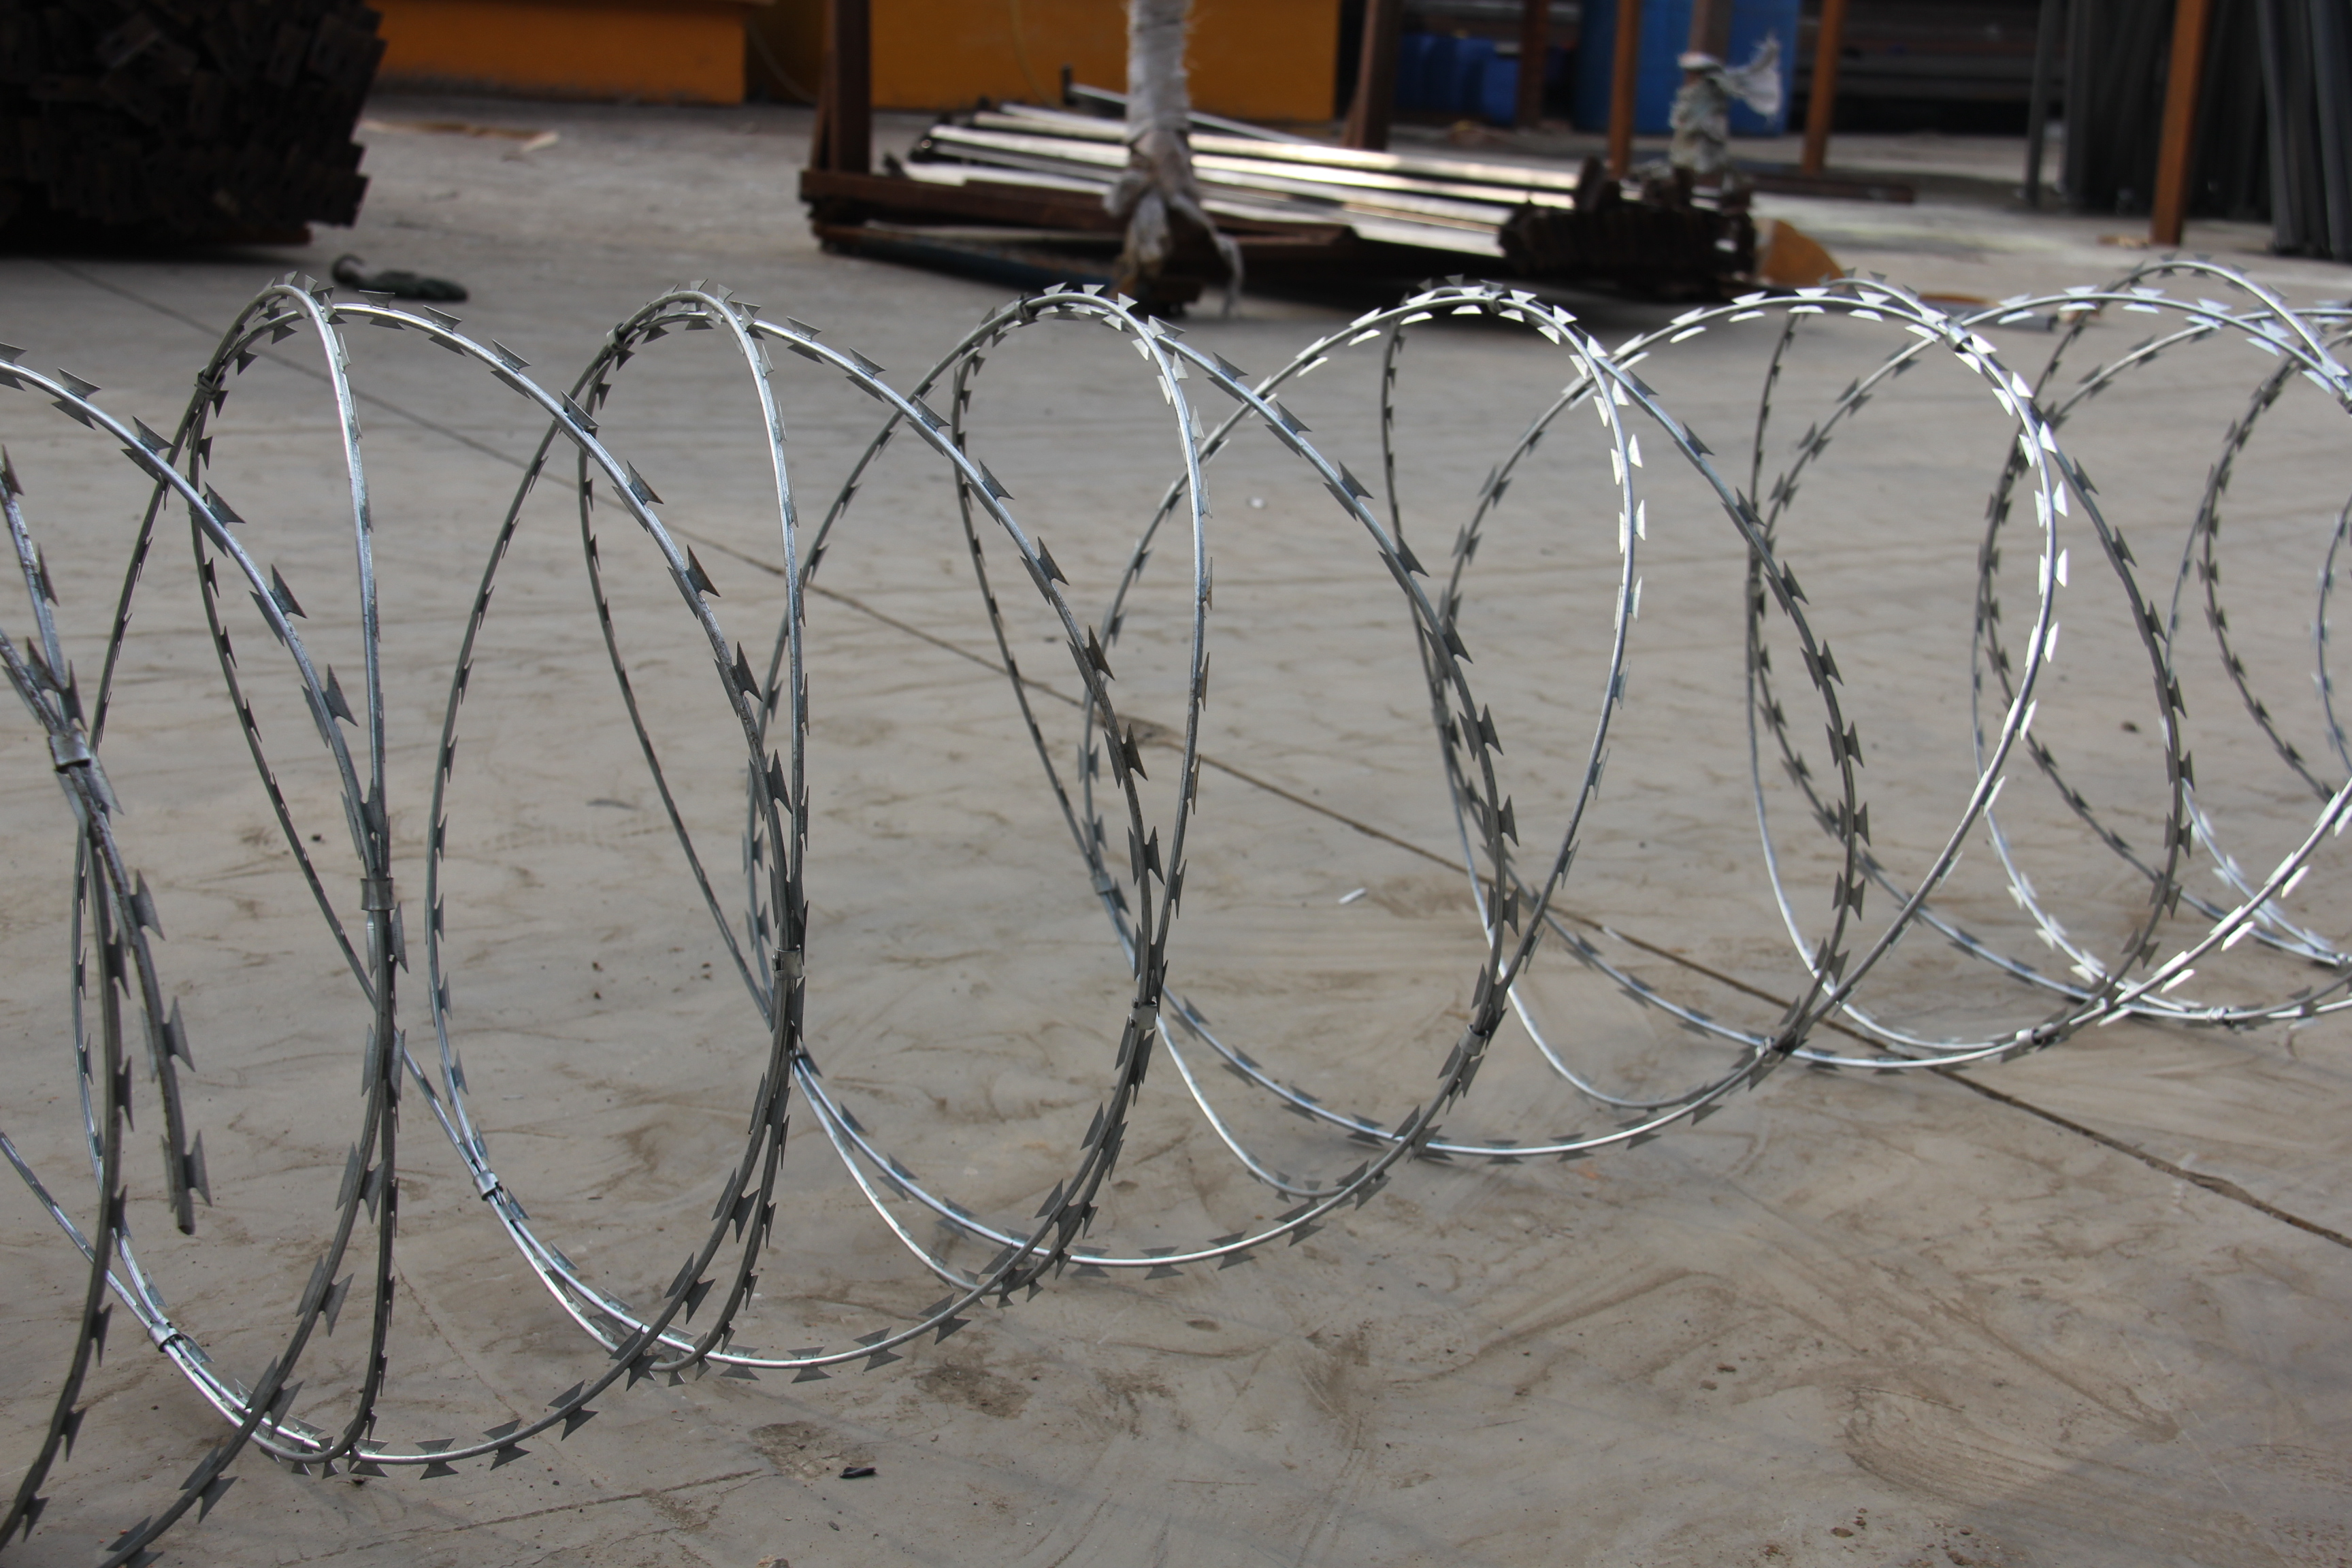 Hot sale Galvanized Stainless Steel Concertina fence Razor Coils BTO-22 Razor Barbed Wire